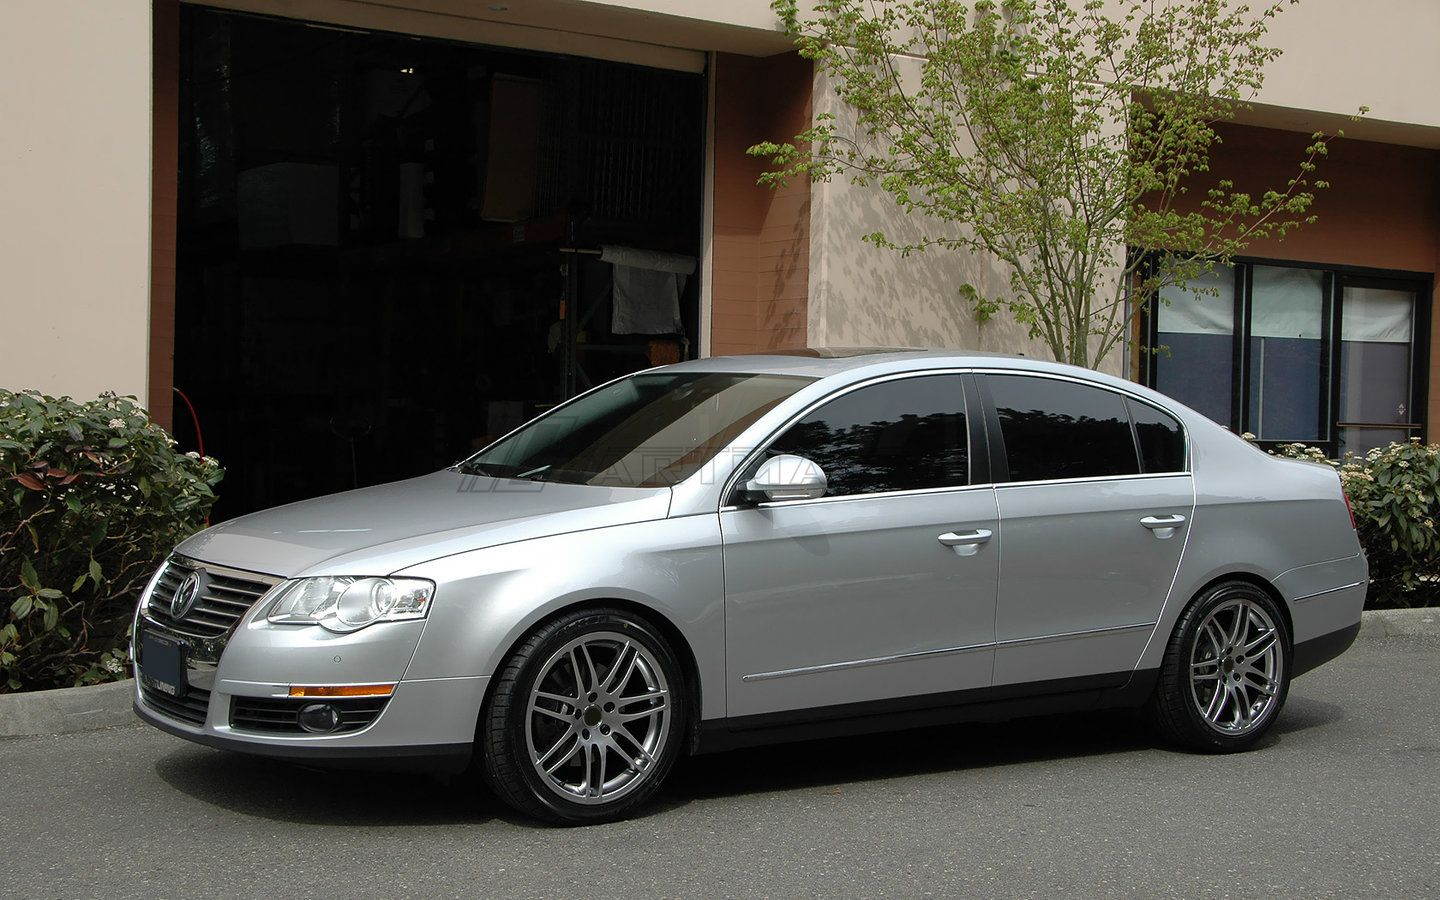 Pin On Rims For Passat